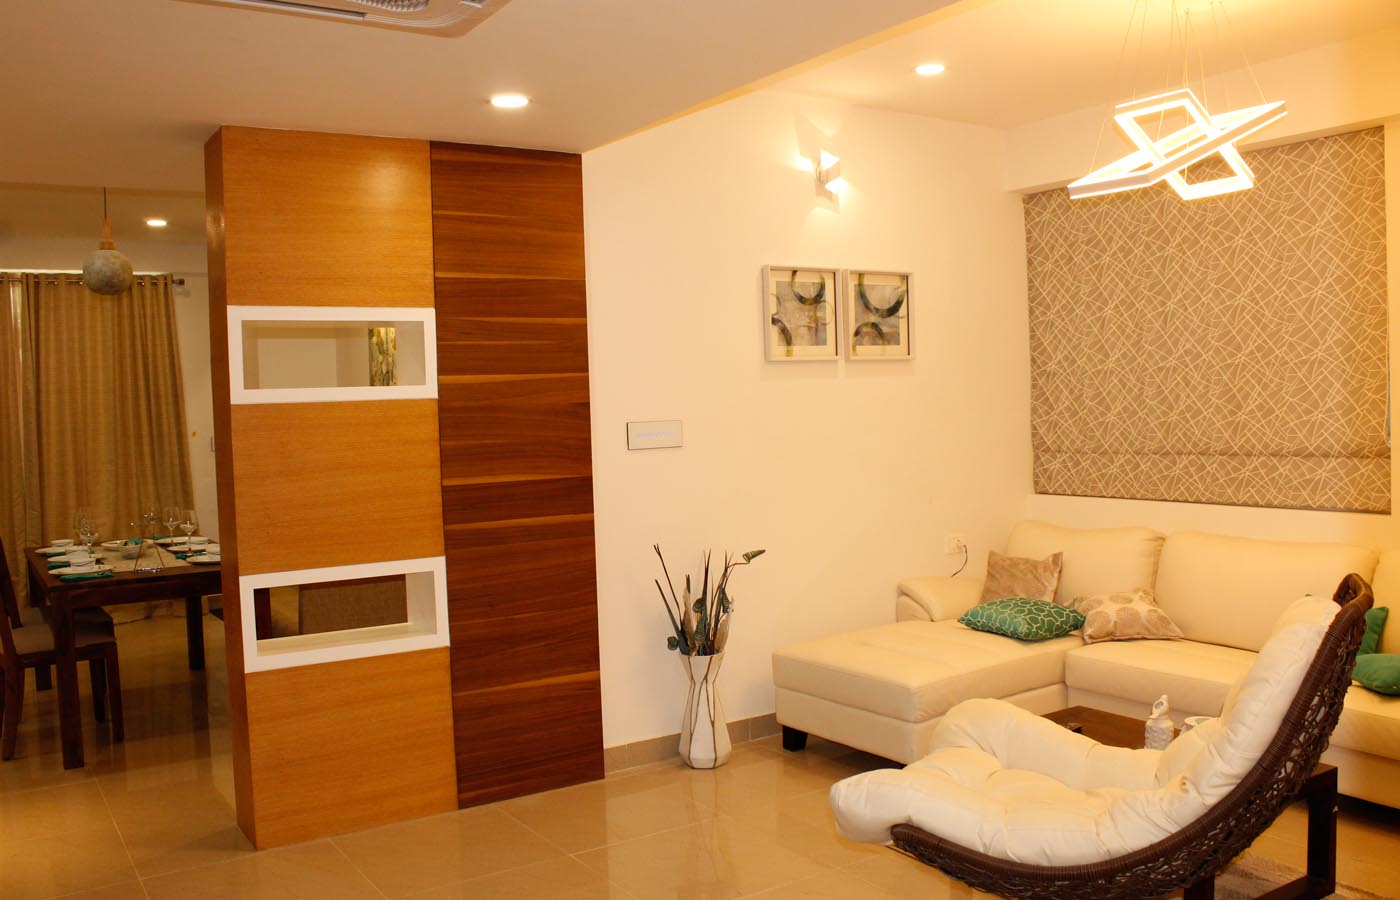 CRDA Approved Flats for Sale near Guntur